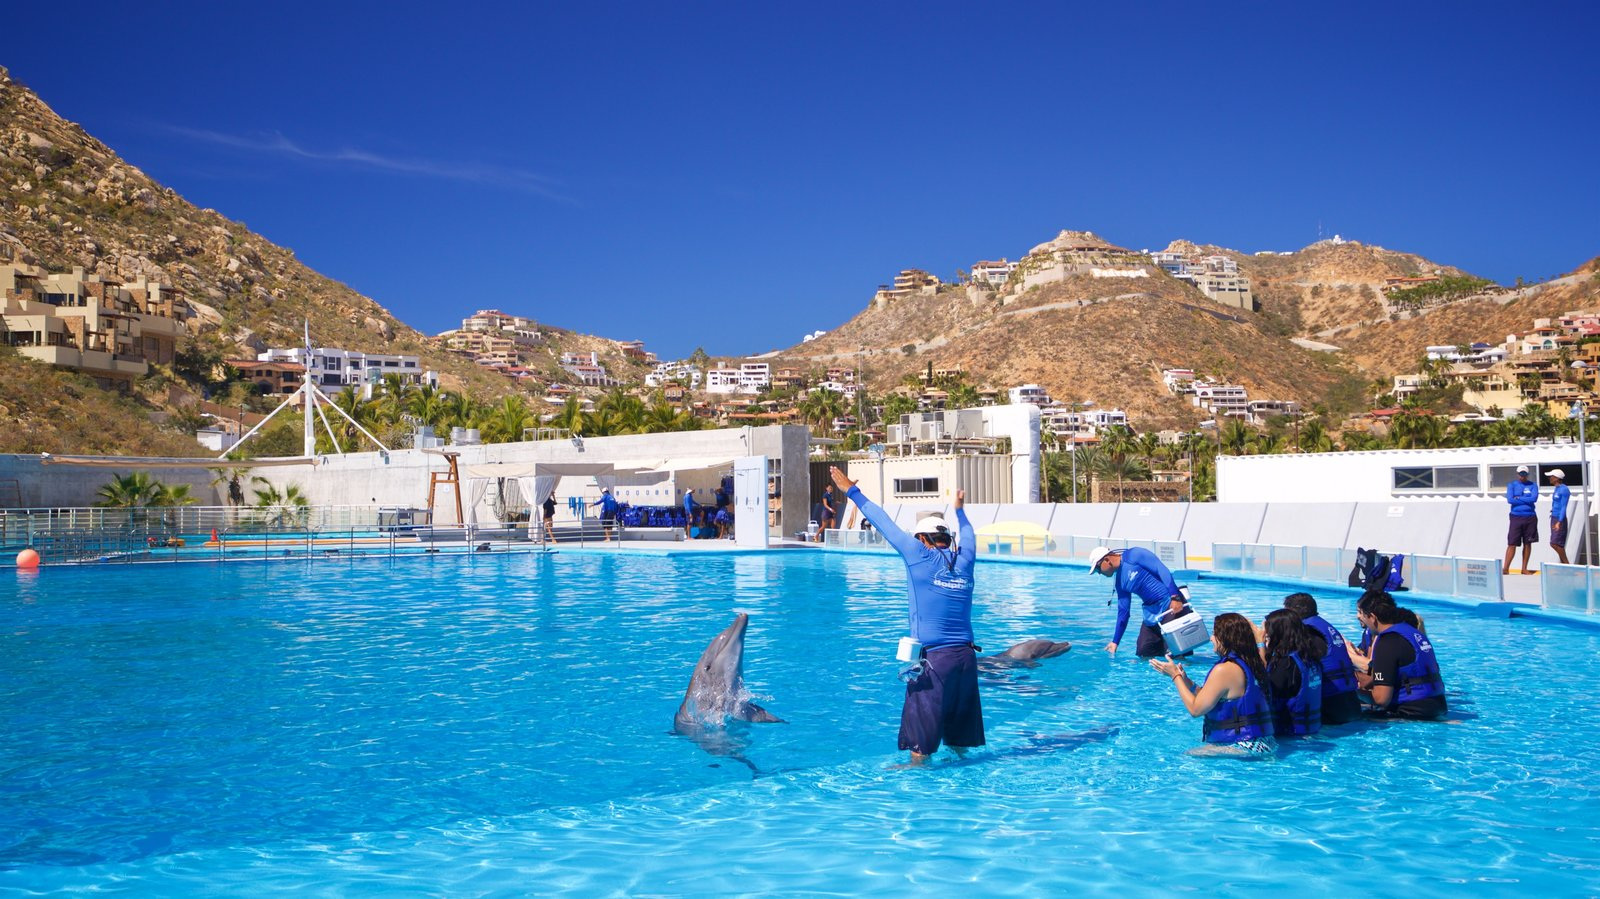 Cabo Dolphins featuring marine life and a pool as well as a small group of people